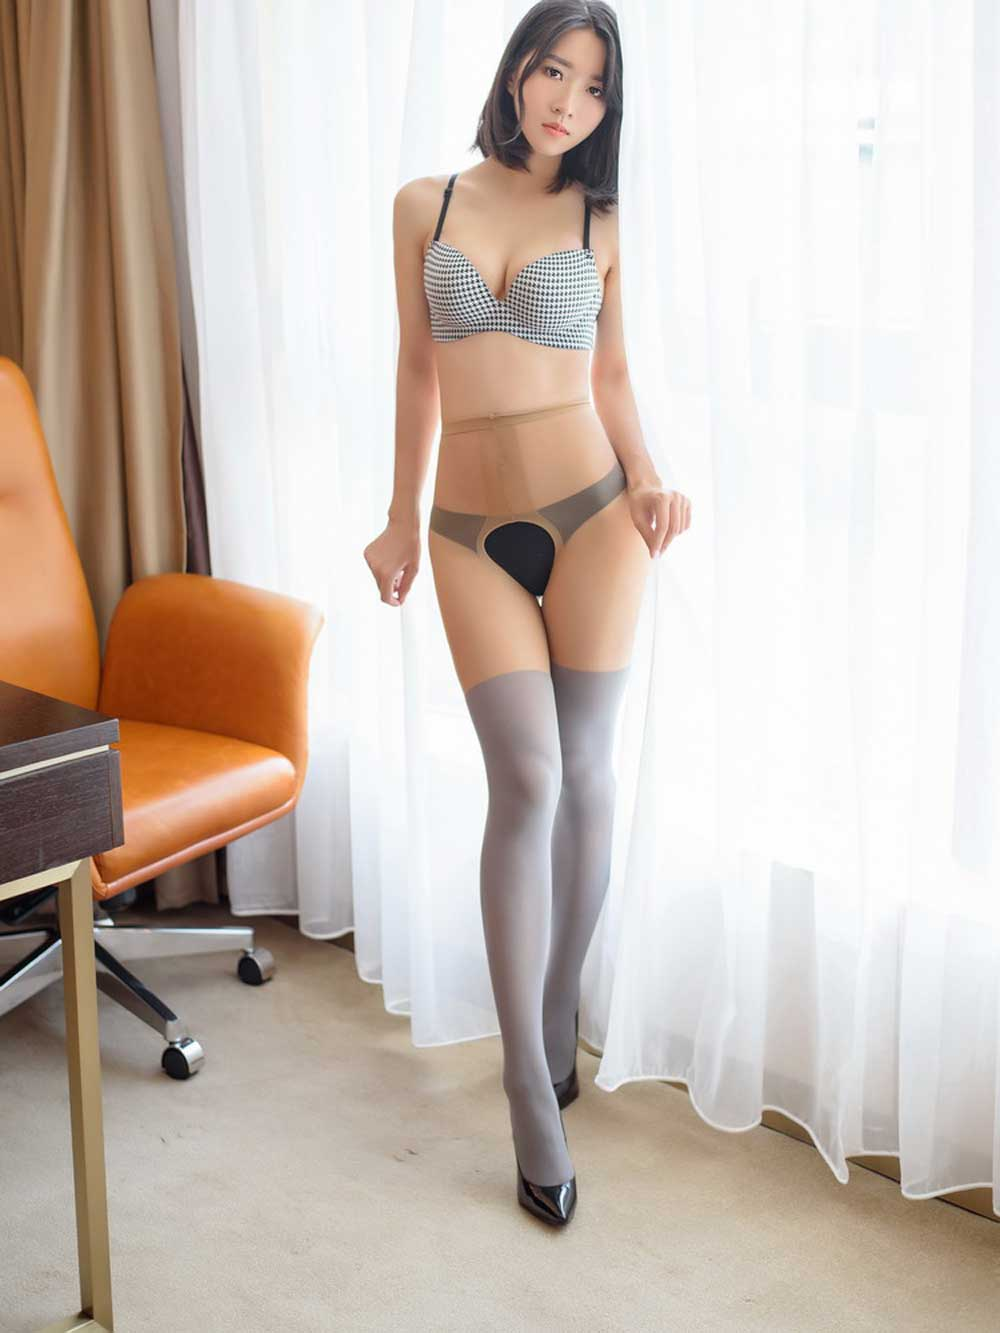 In Shiny Pantyhose At 101